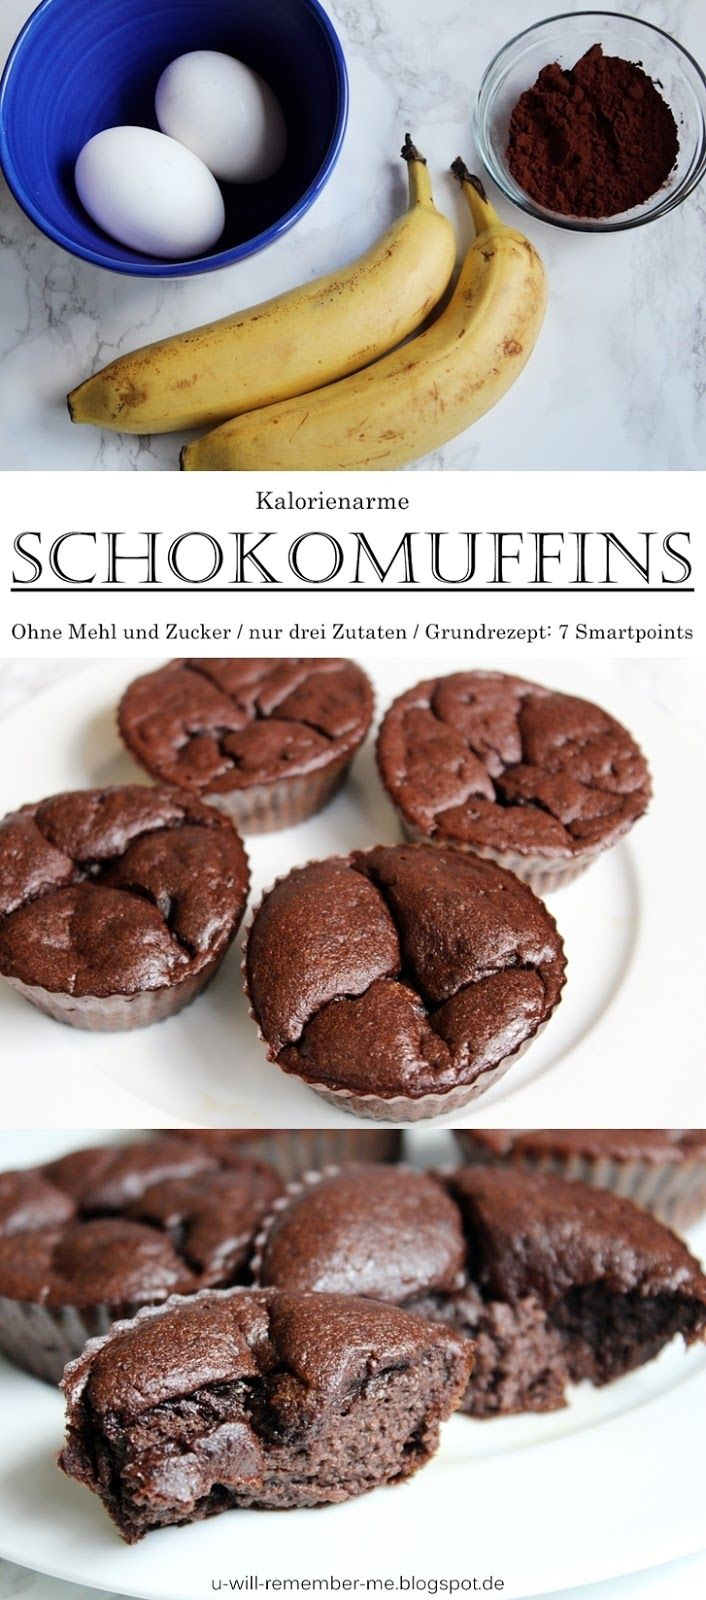 {REZEPT} - Kalorienarme Bananen-Ei-Schoko Muffins | You will remember me